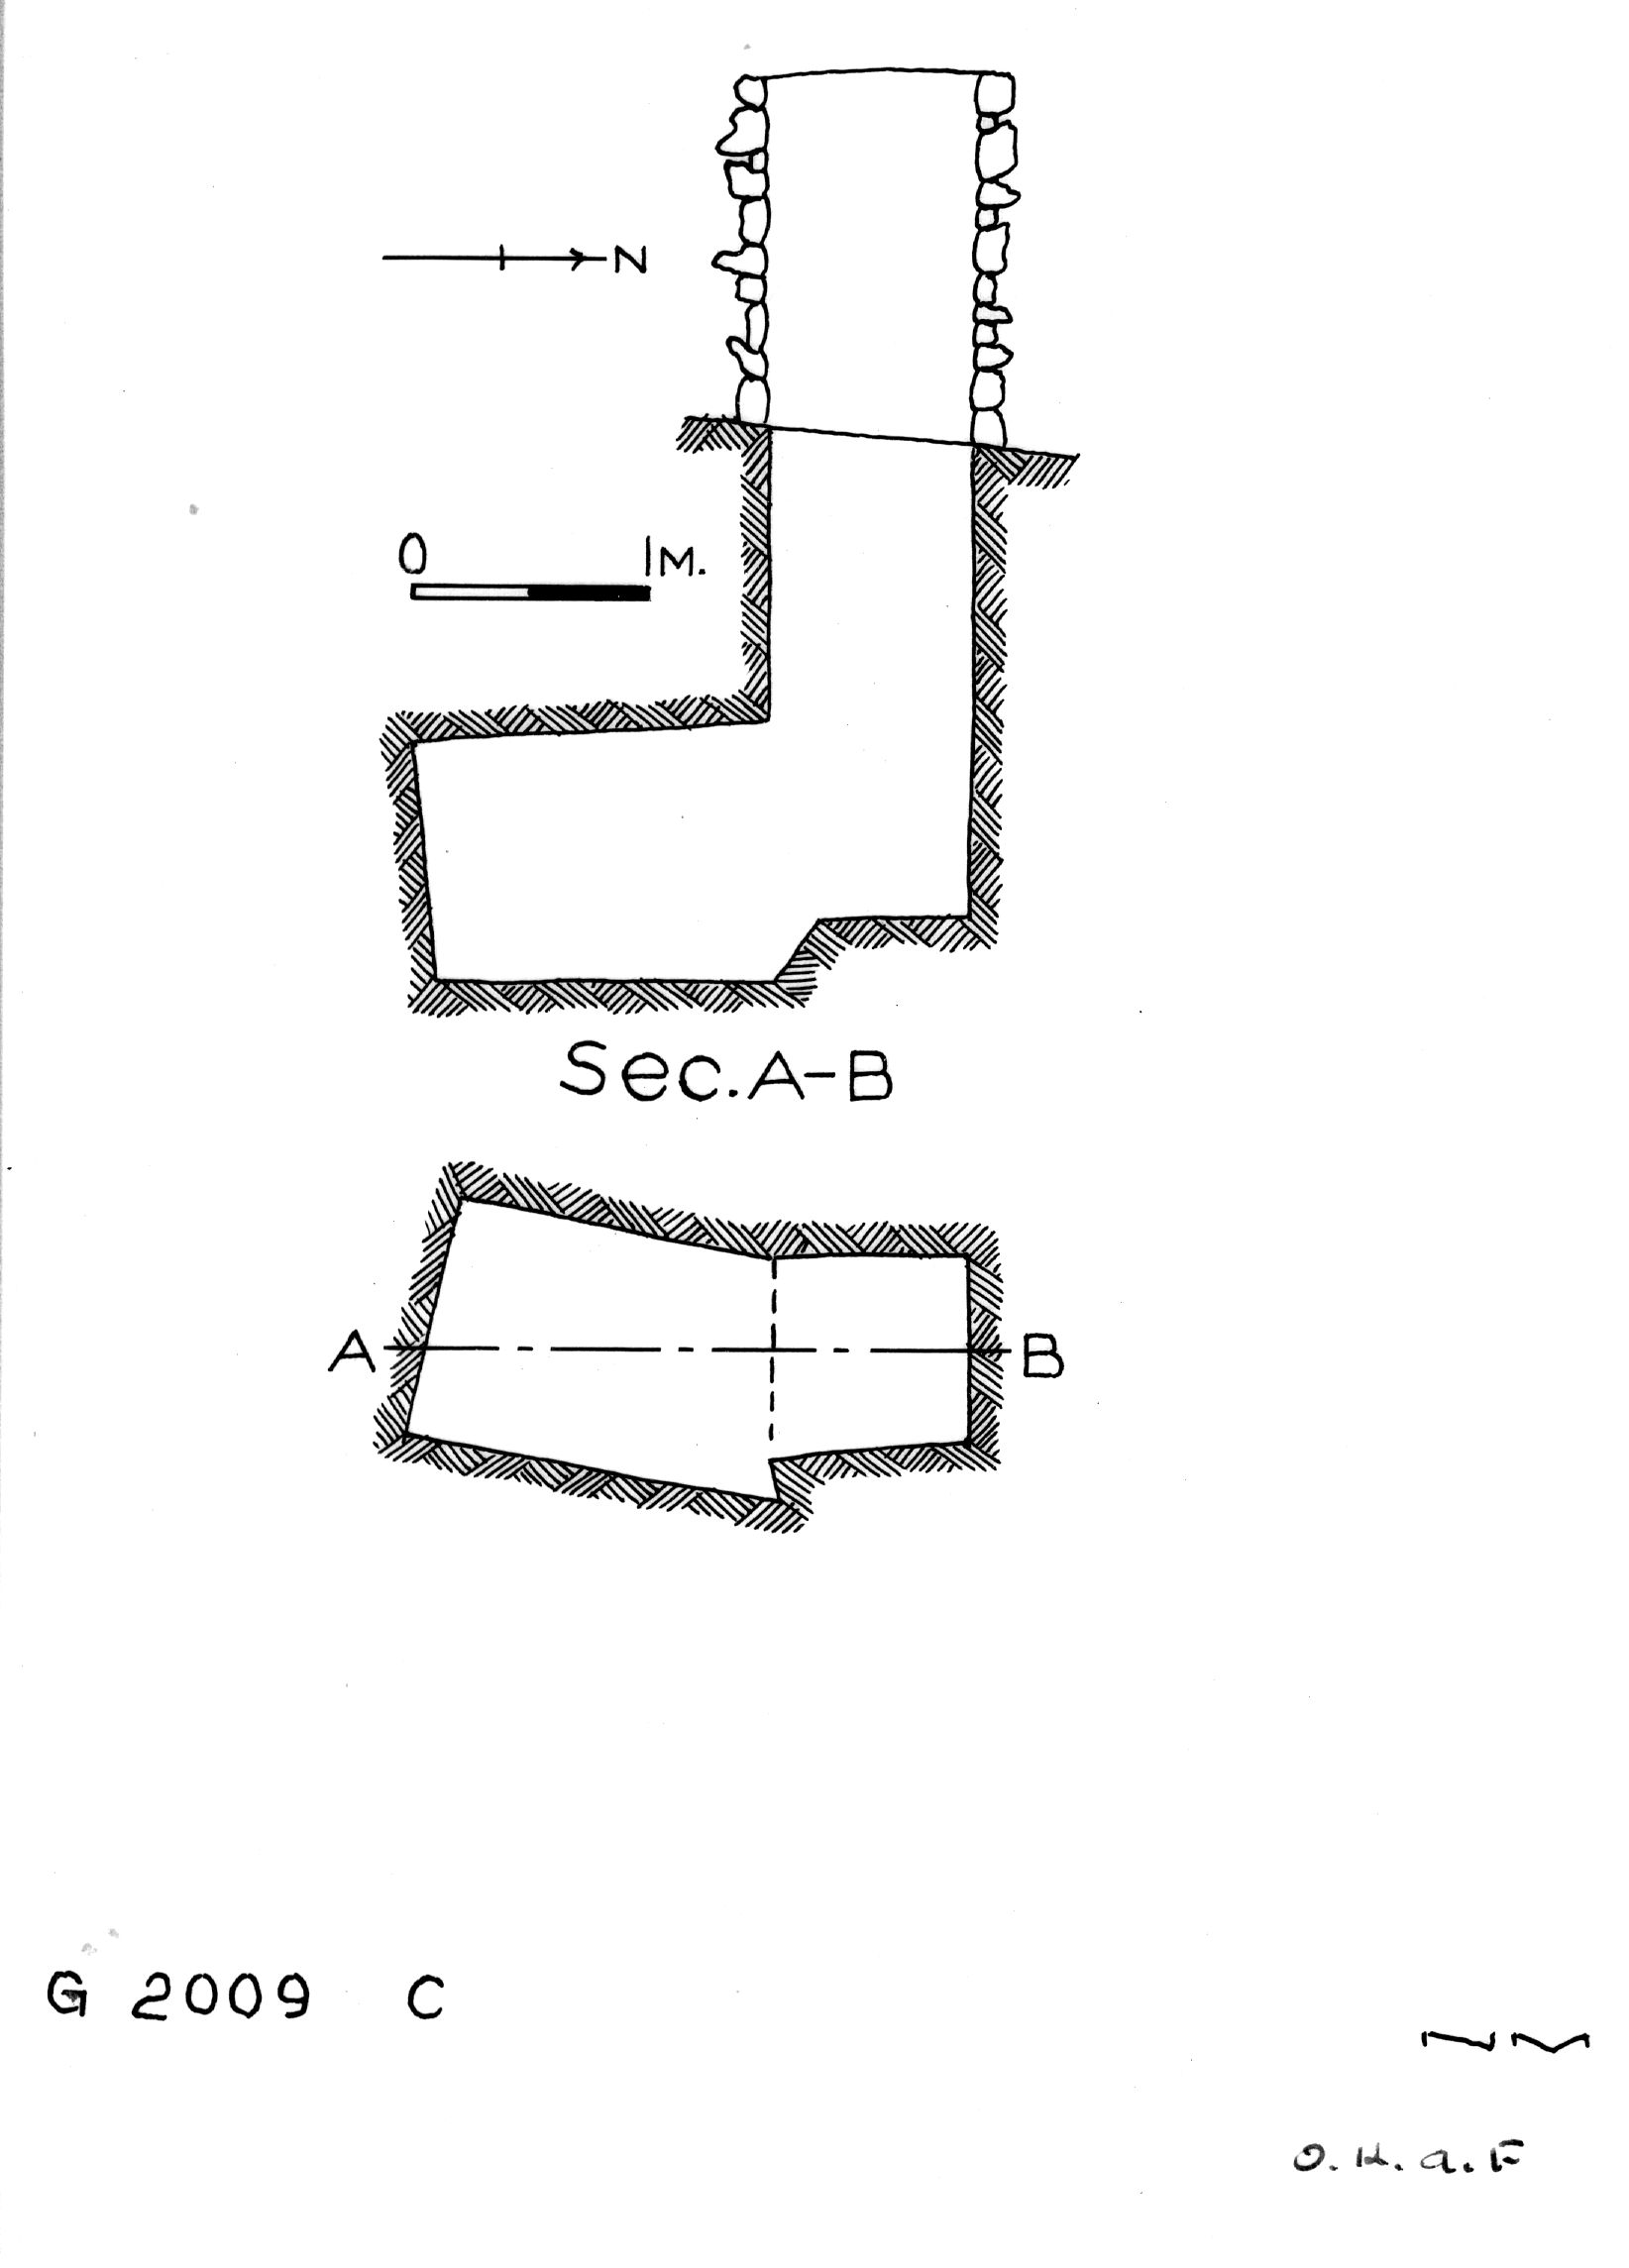 Maps and plans: G 2009, Shaft C